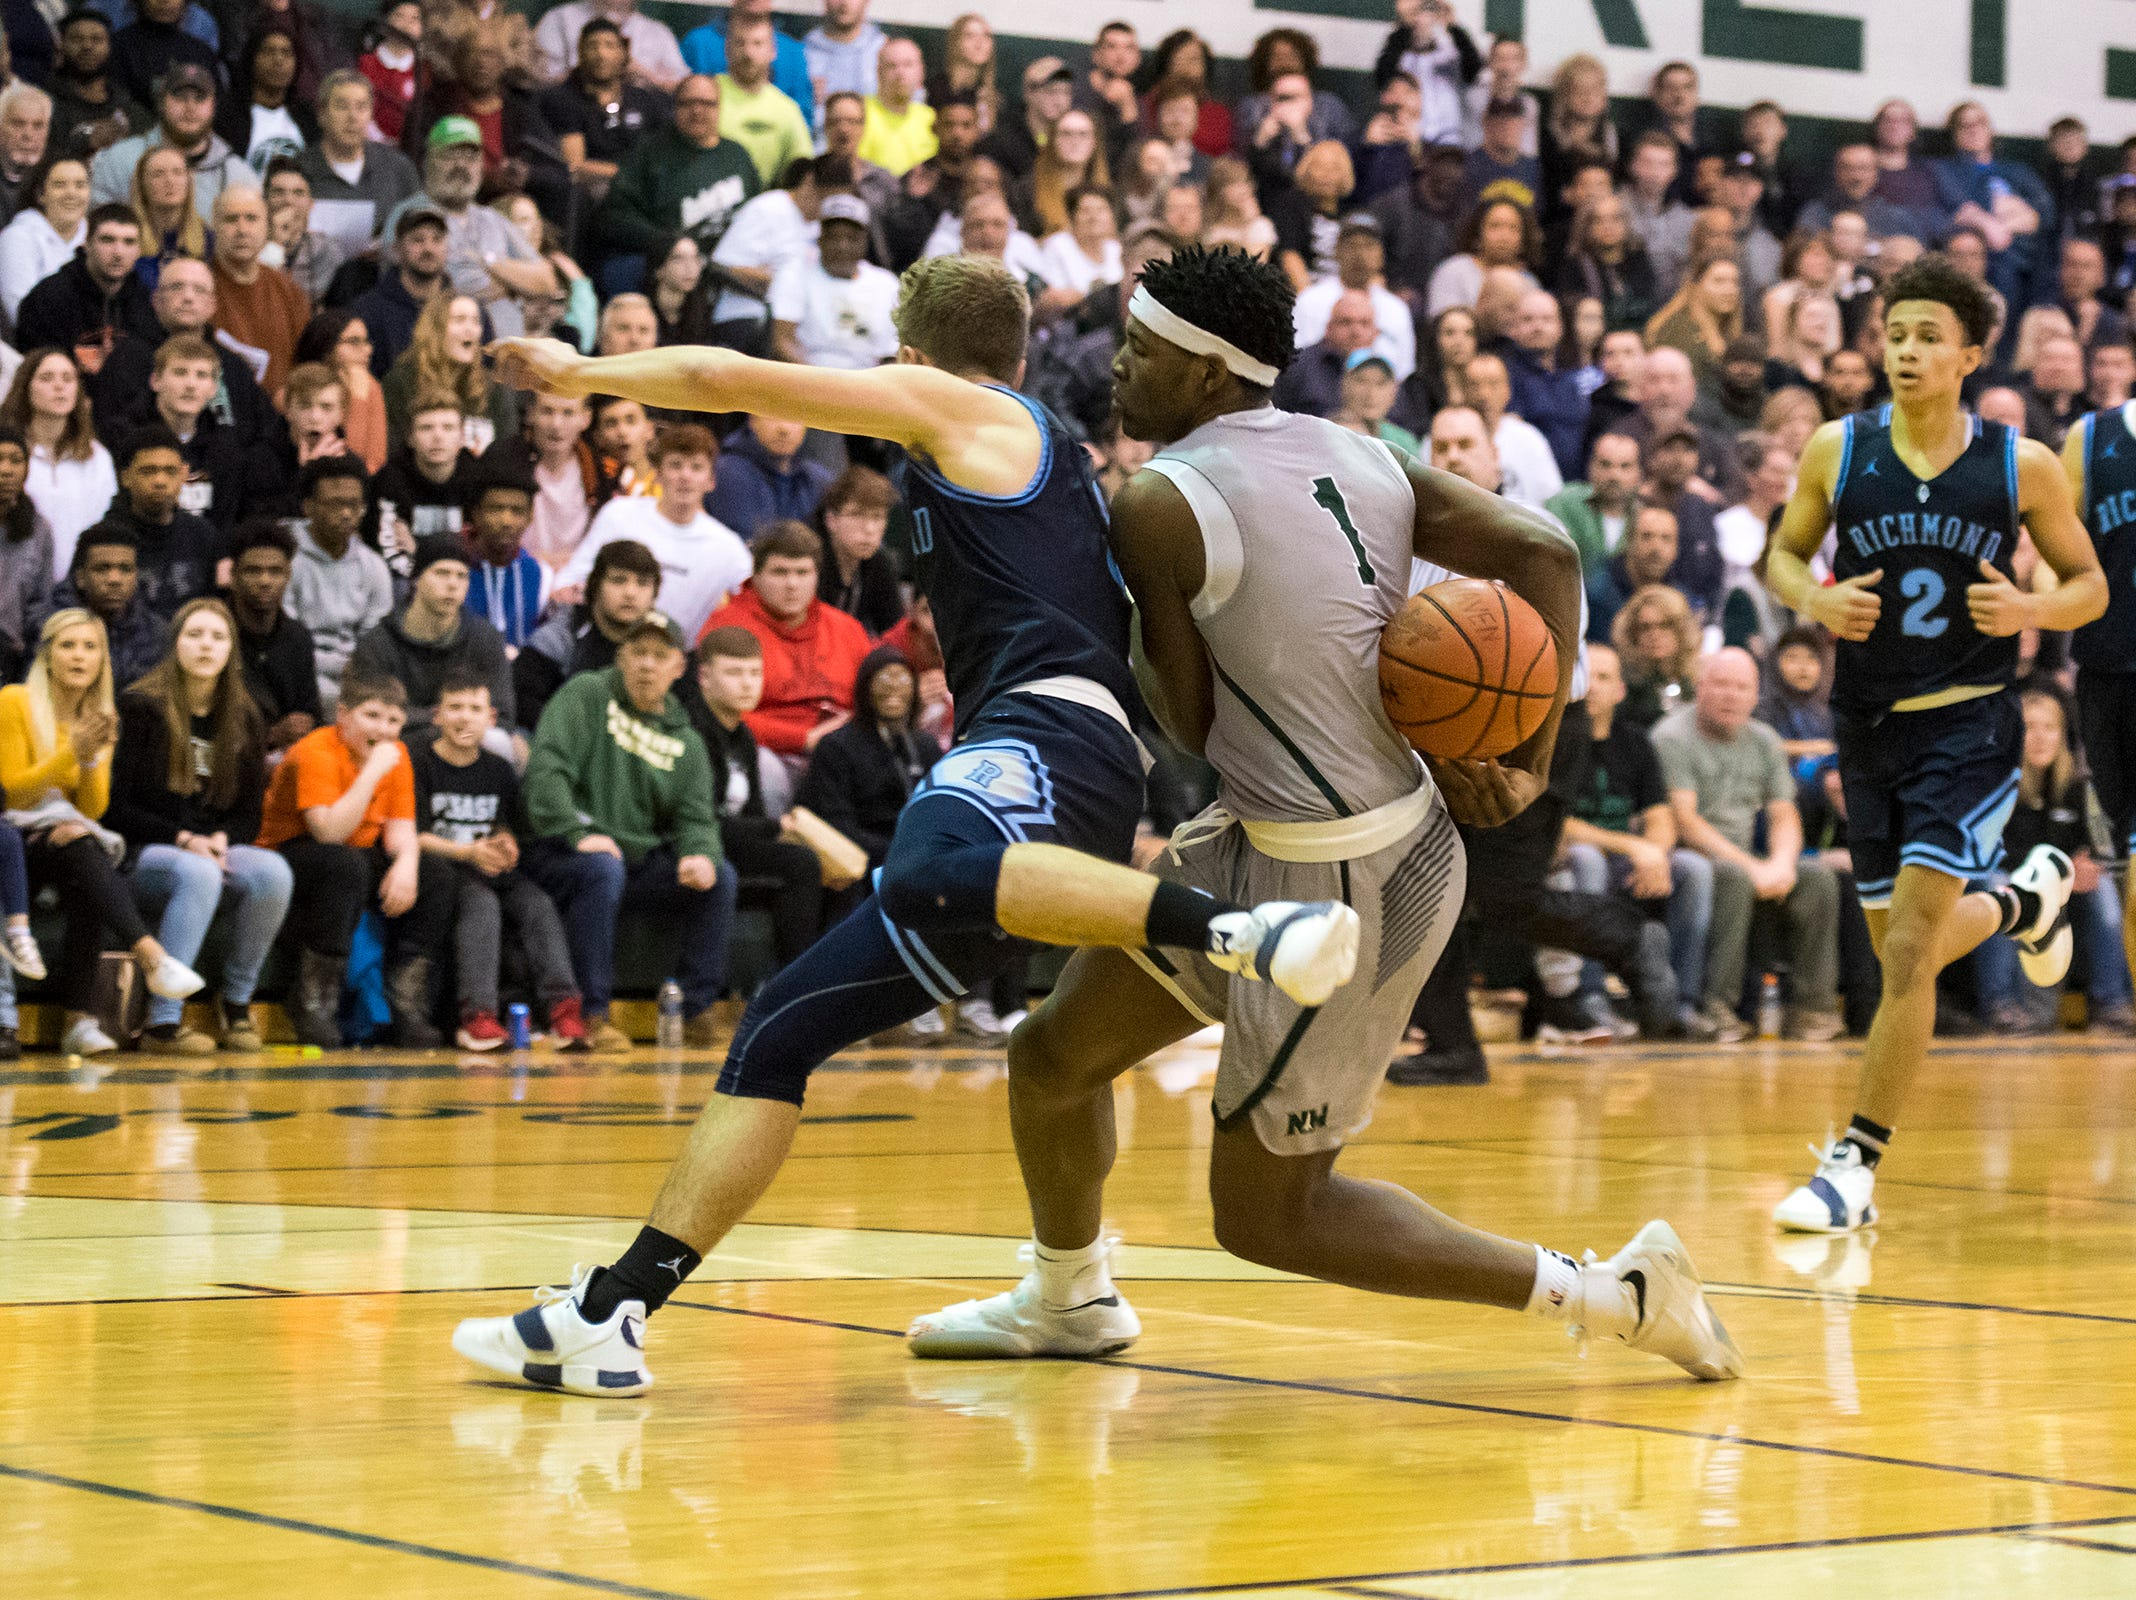 New Haven forward Romeo Weems (1) pushes into Richmond High School guard Jackson Allen during the MHSAA Division 2 Boys Basketball District Finals Friday, March 1, 2019 at New Haven High School.